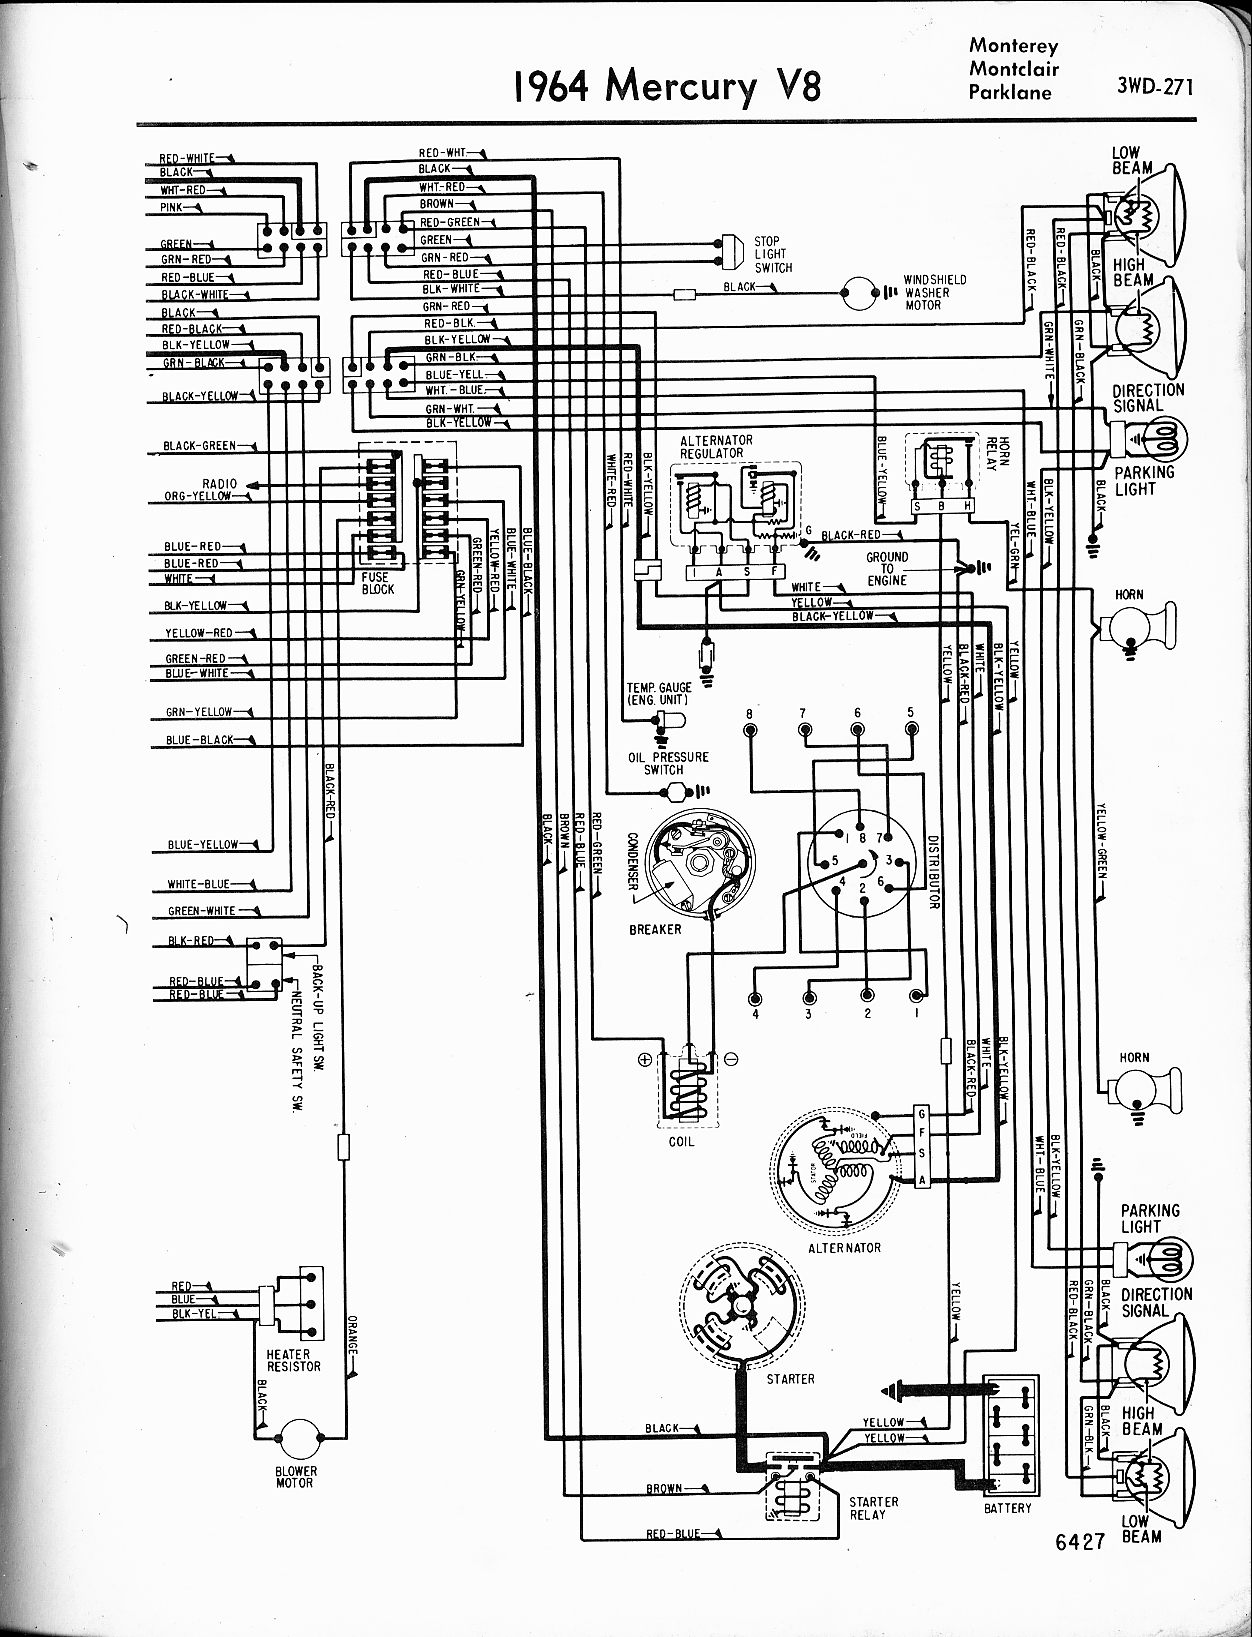 1964 corvette wiring schematic wiring library rh 73 mac happen de